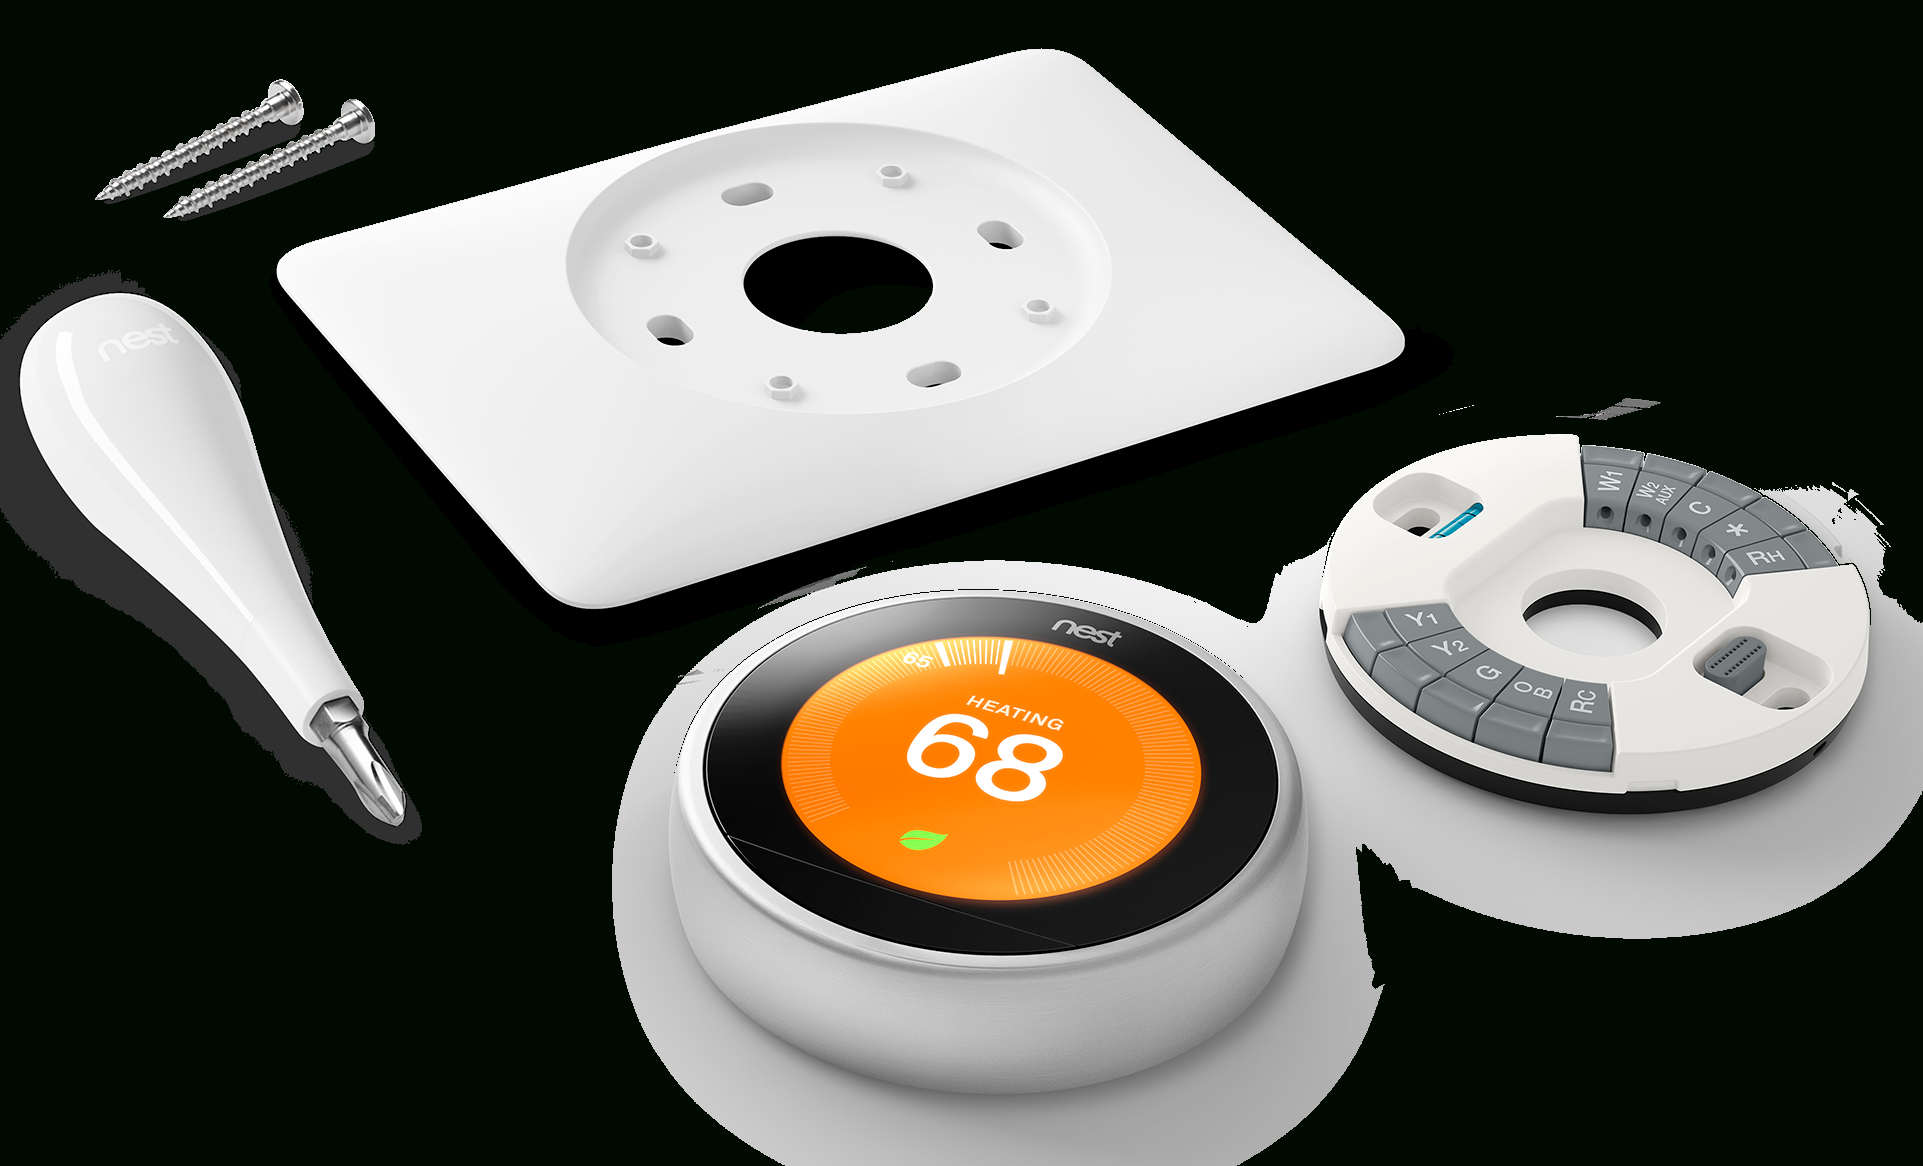 How To Install Your Nest Thermostat - Check Your Nest Thermostat Wiring Diagram